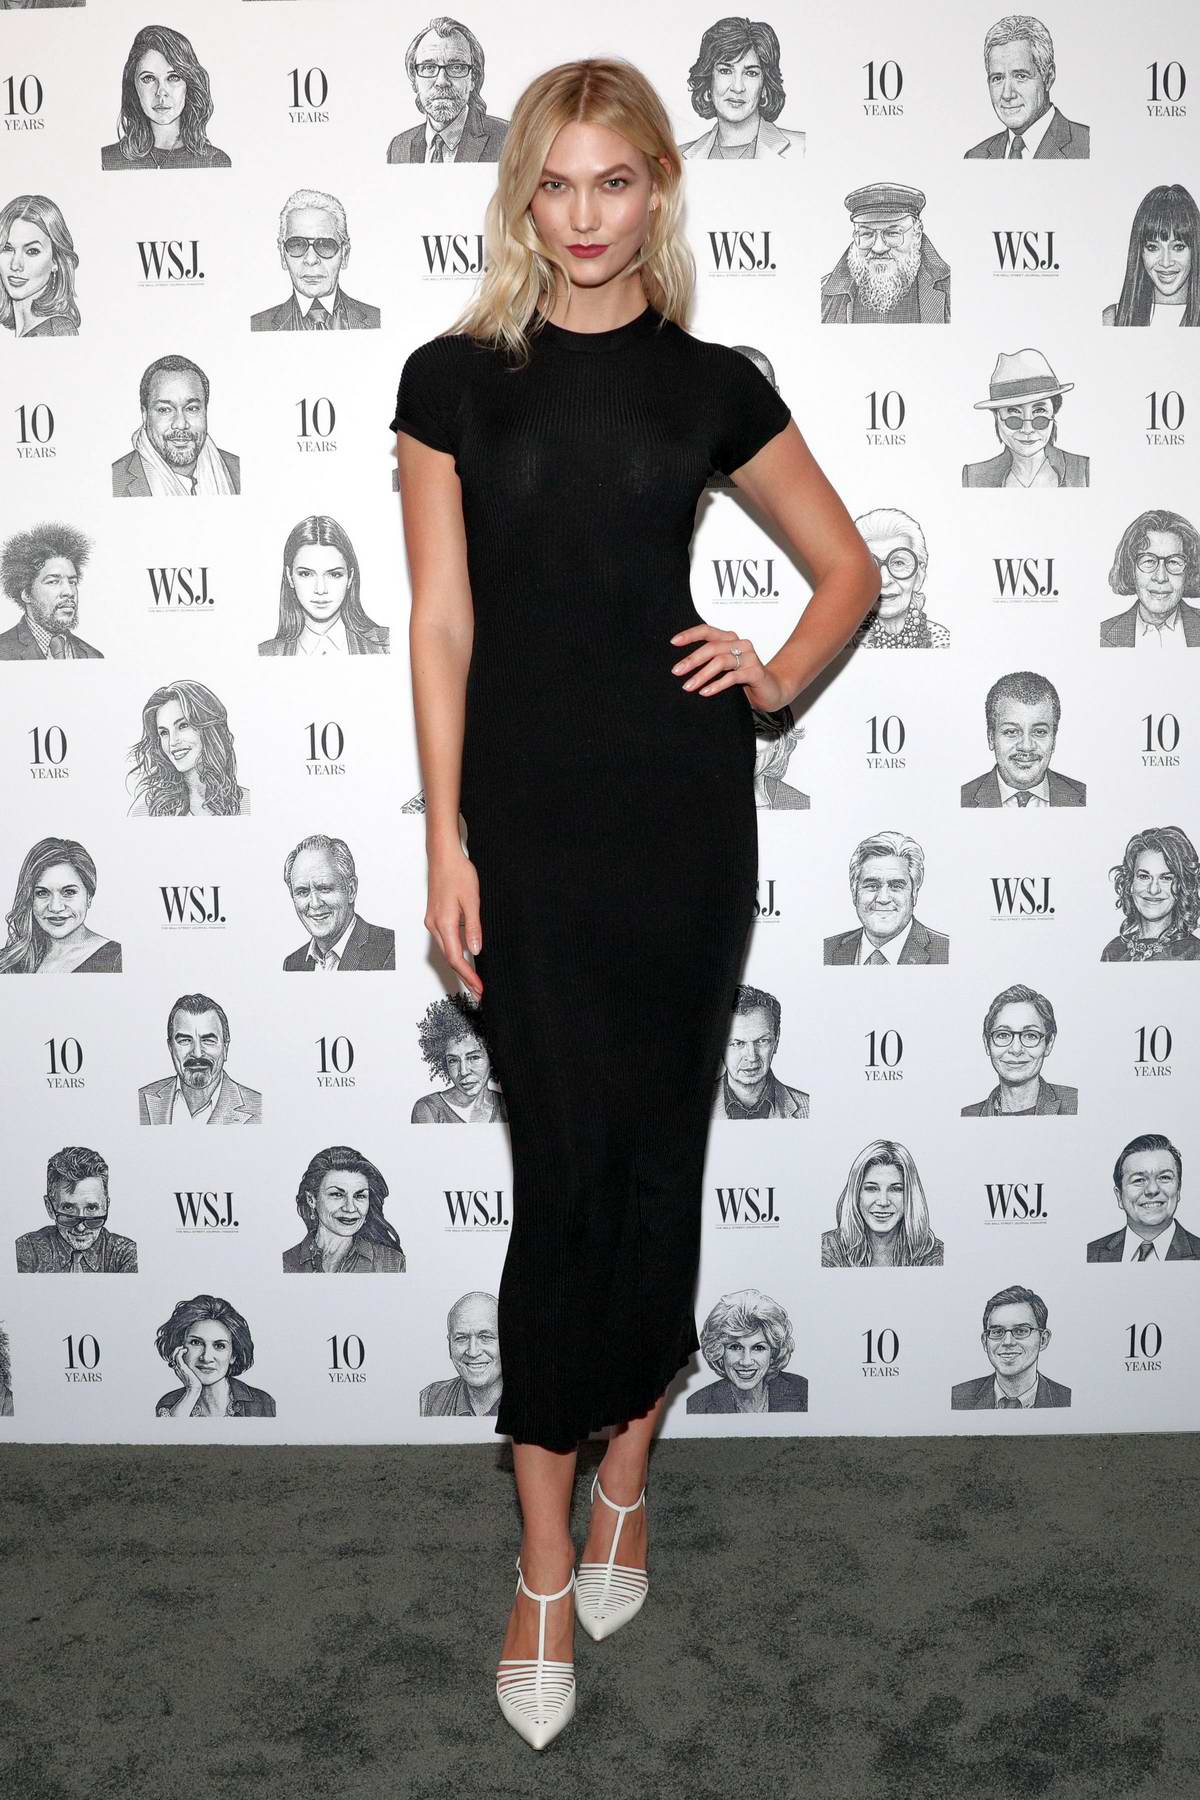 Karlie Kloss attends WSJ Magazines 10th Anniversary Party in New York City